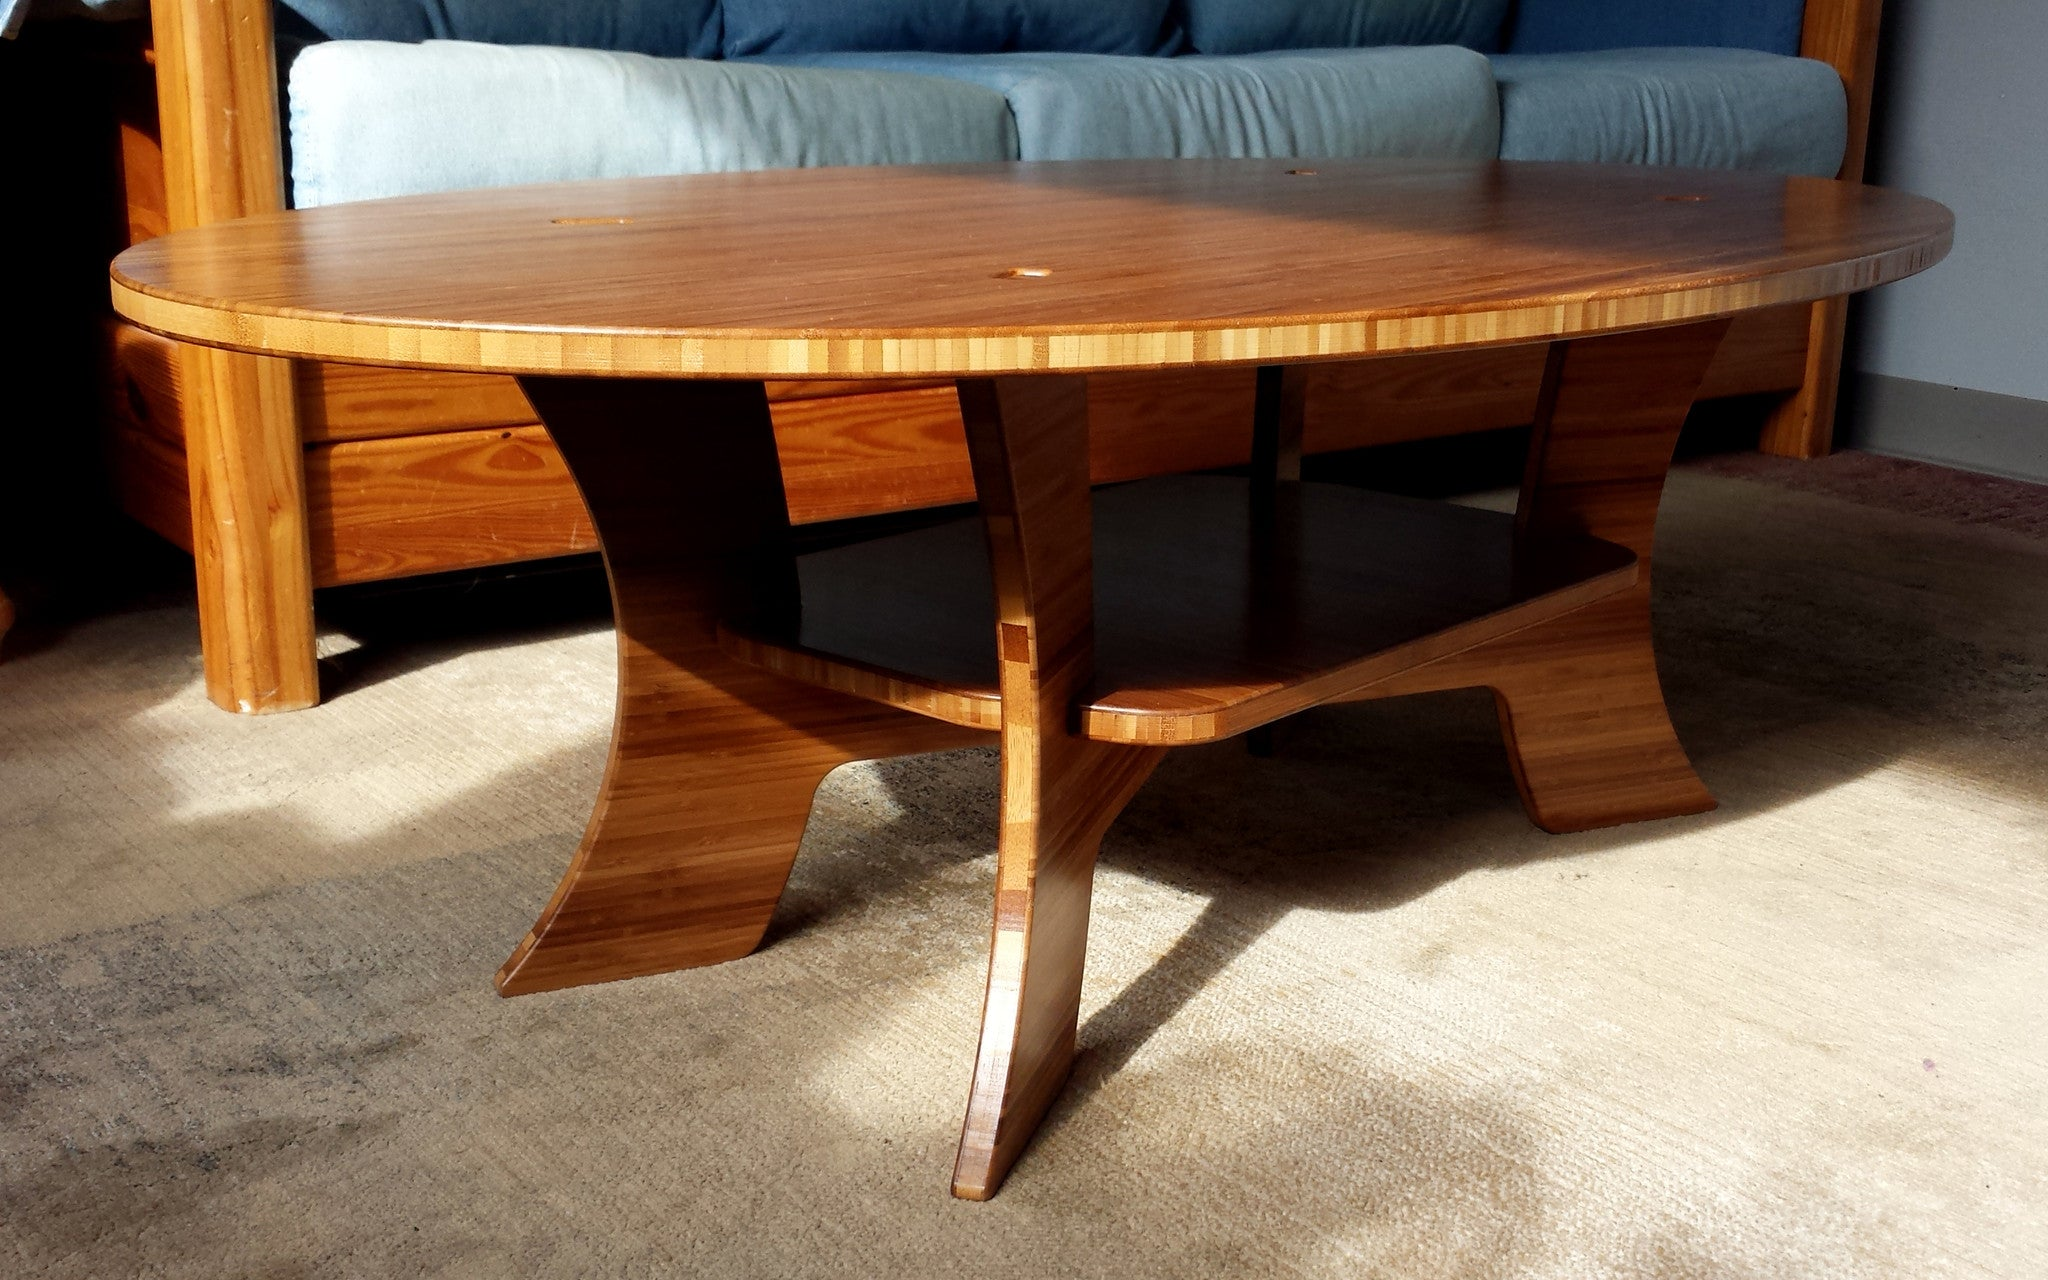 The Samurai Coffee Table Bamboo Furniture